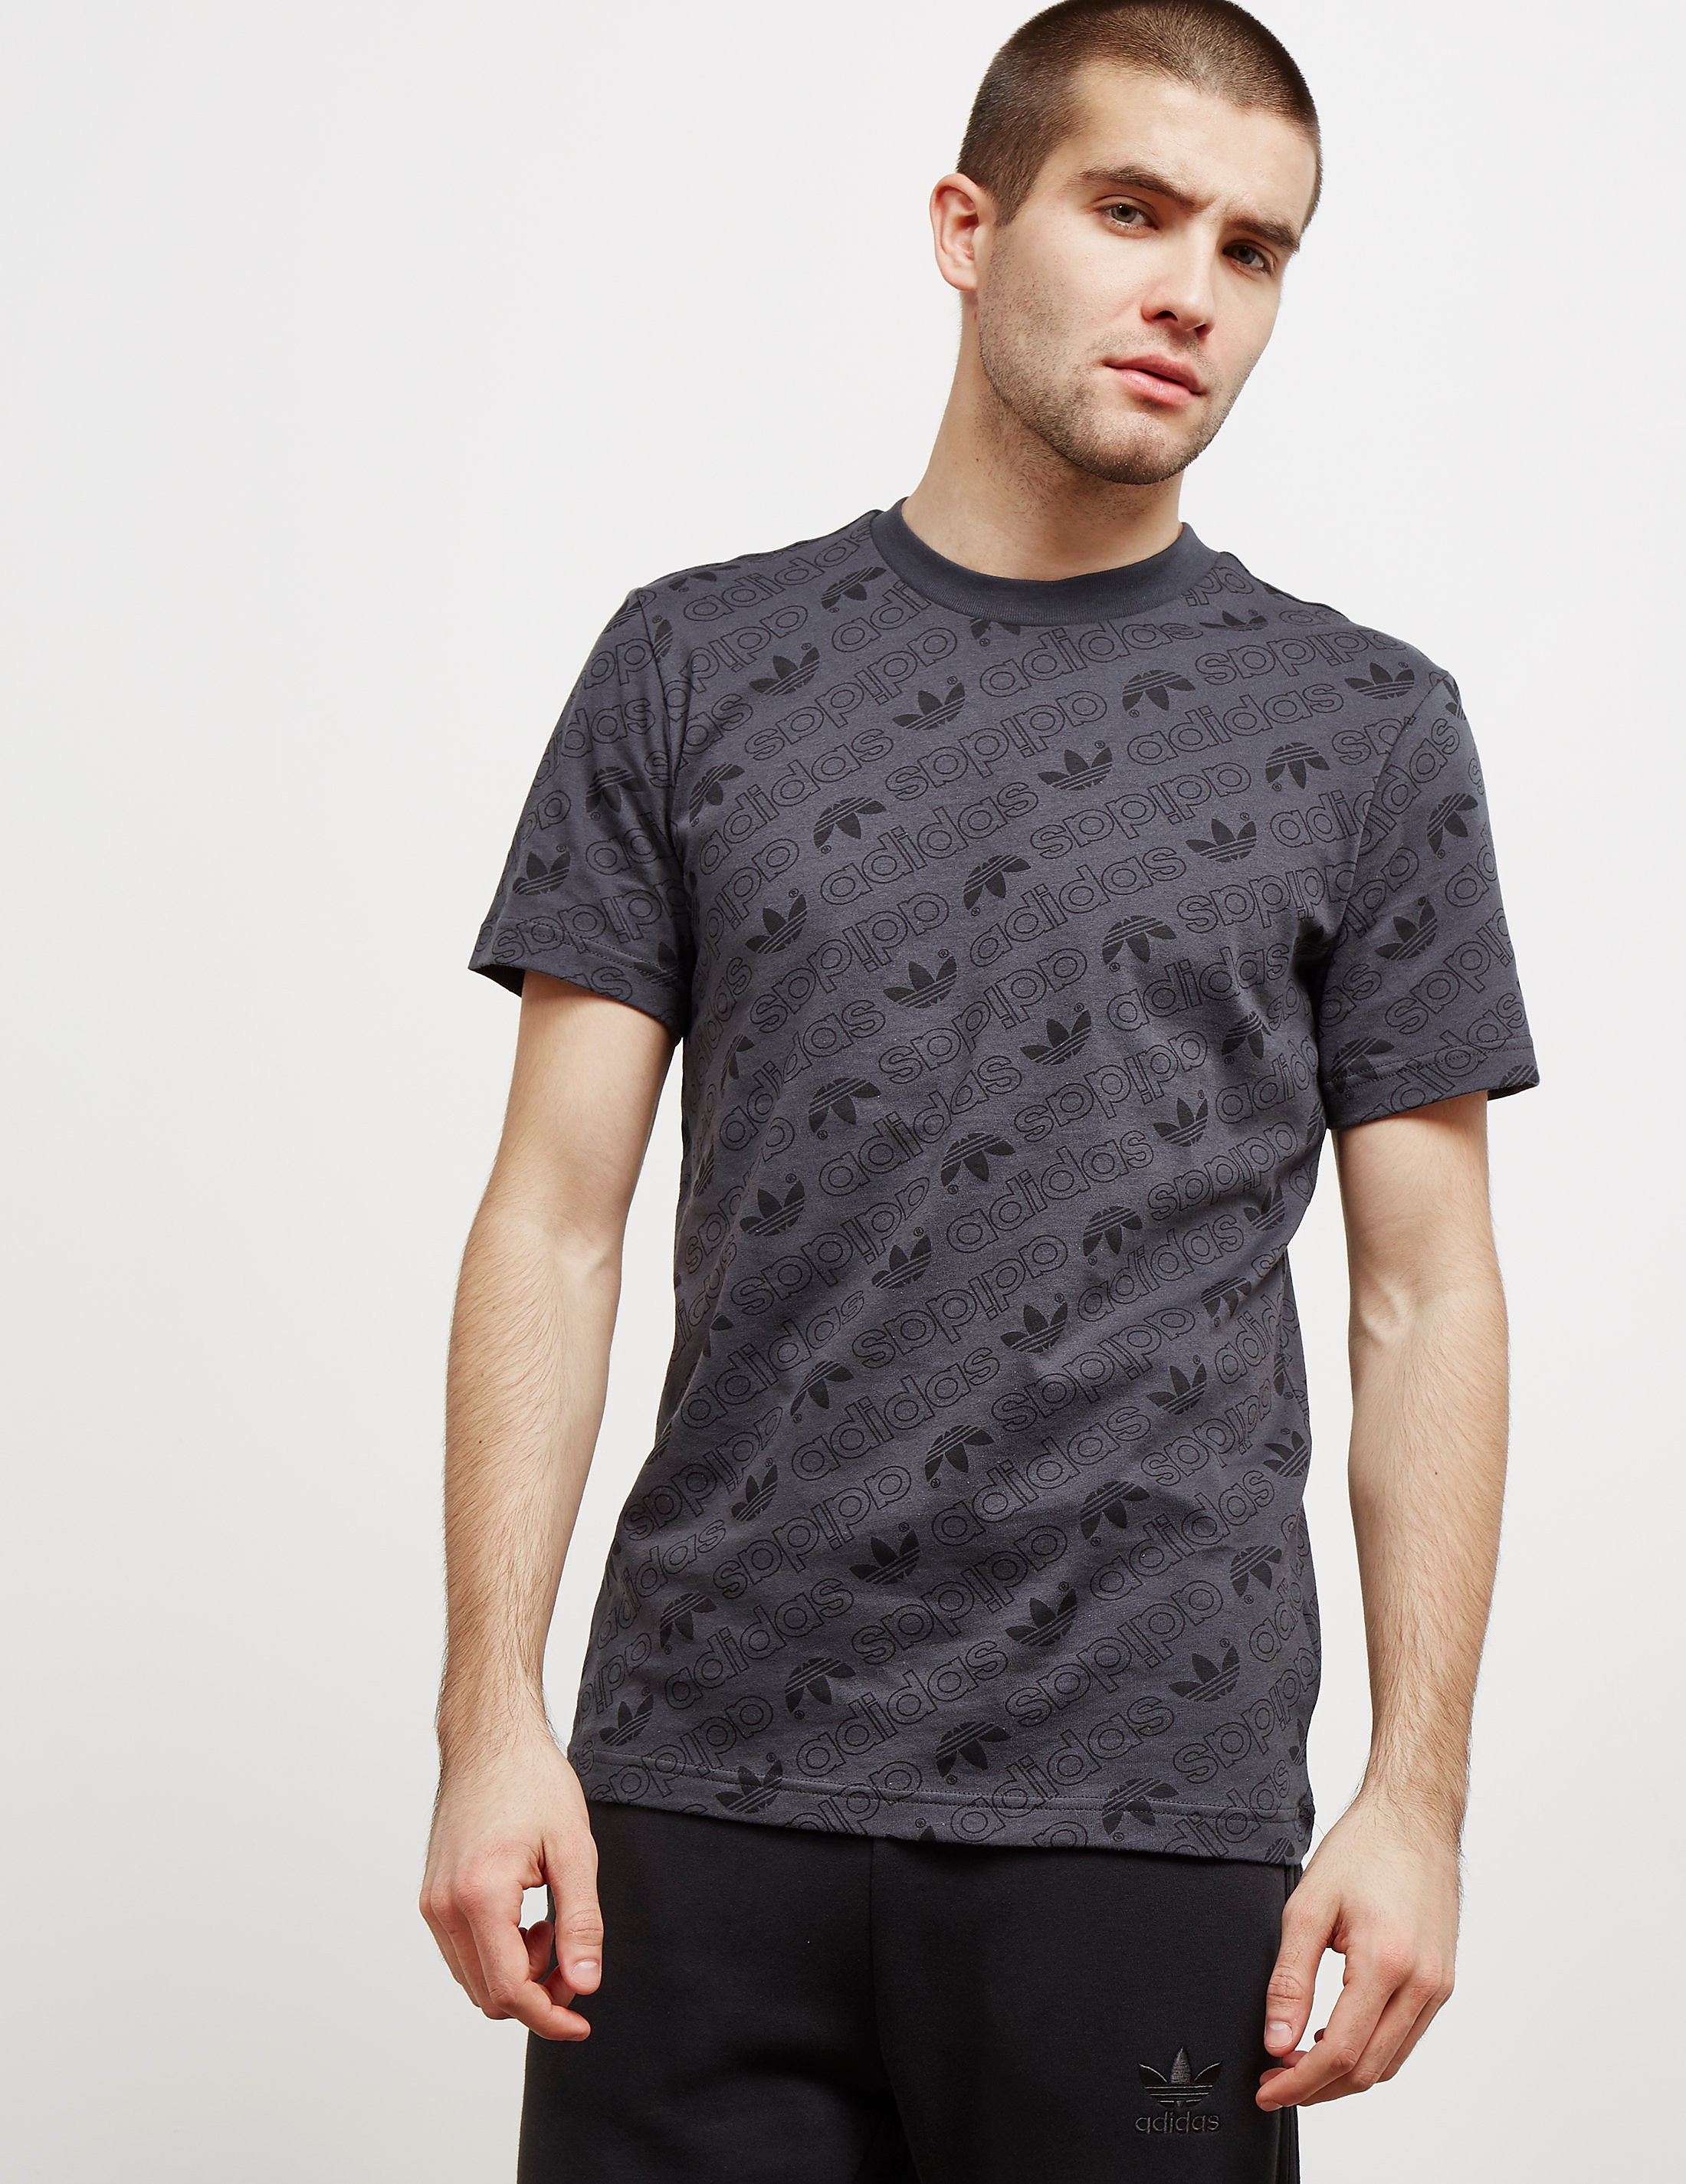 adidas Originals All Over Print T-Shirt